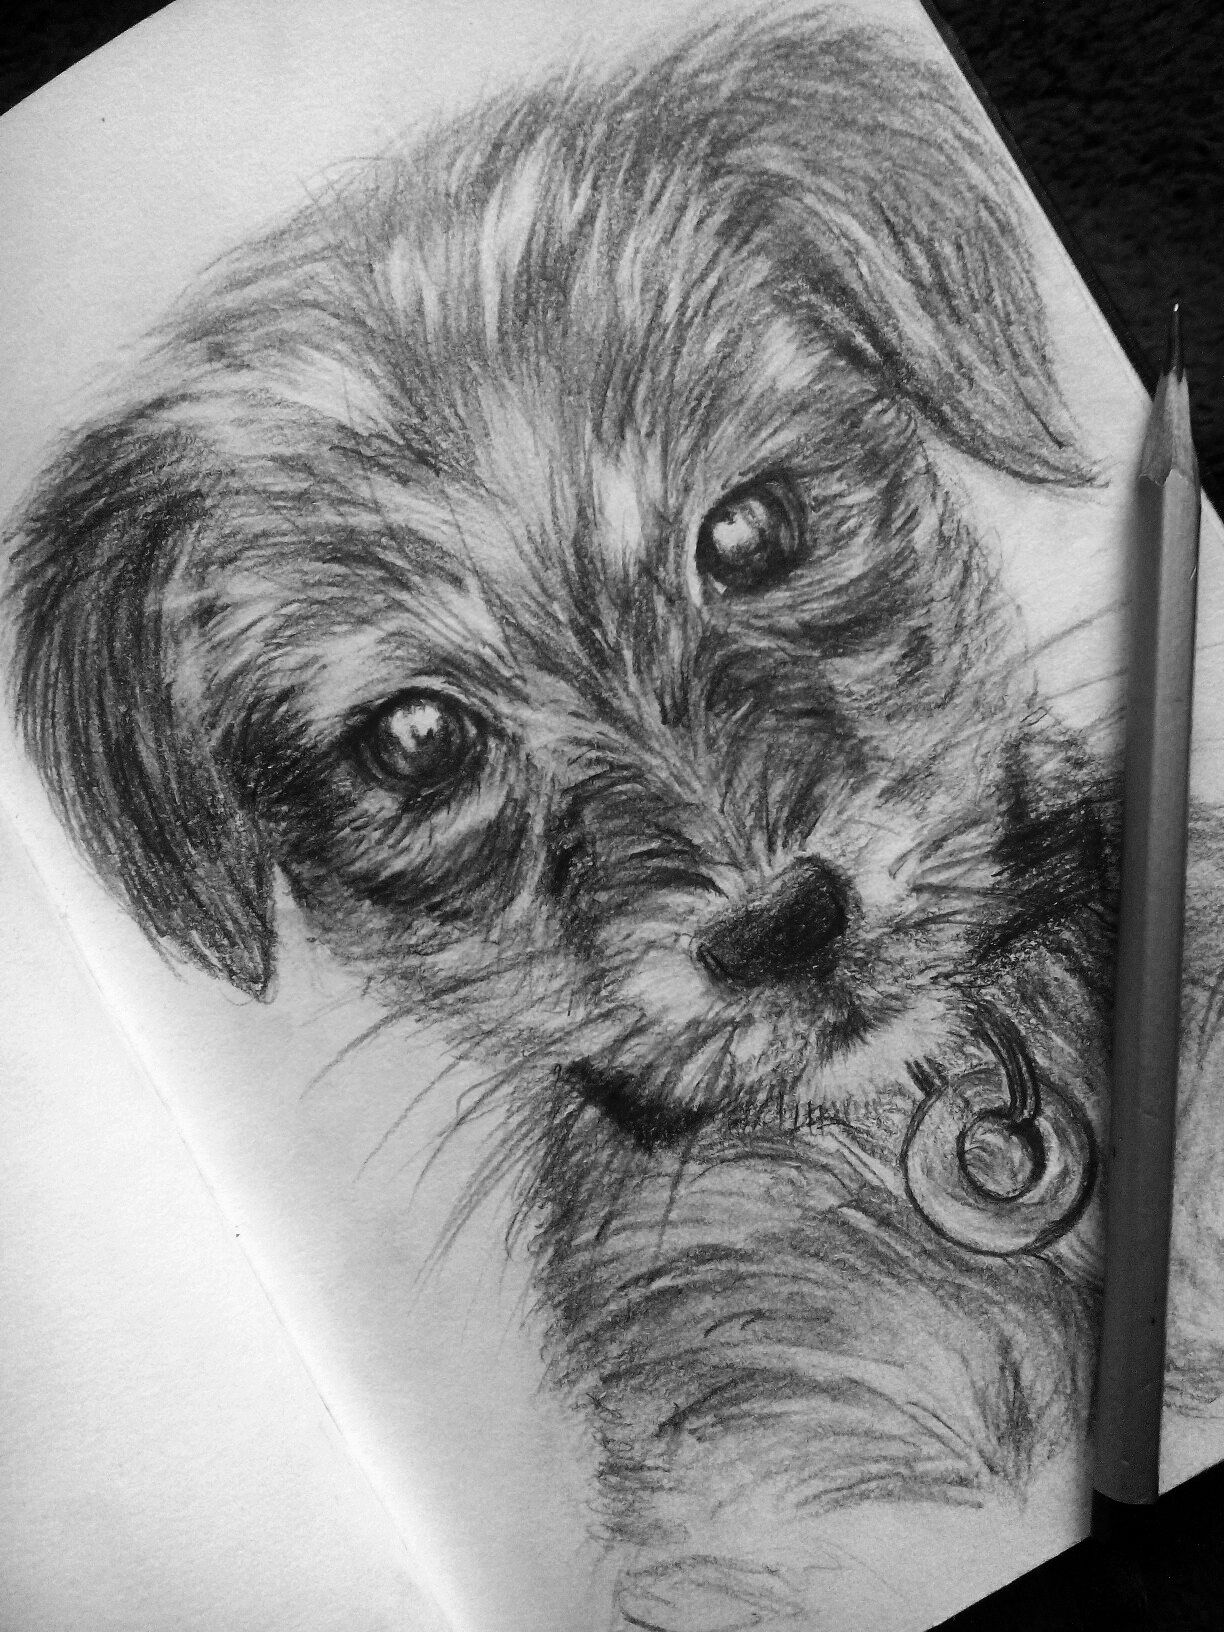 Puppy drawing pencil cute dog pencil drawing of a puppy dogs